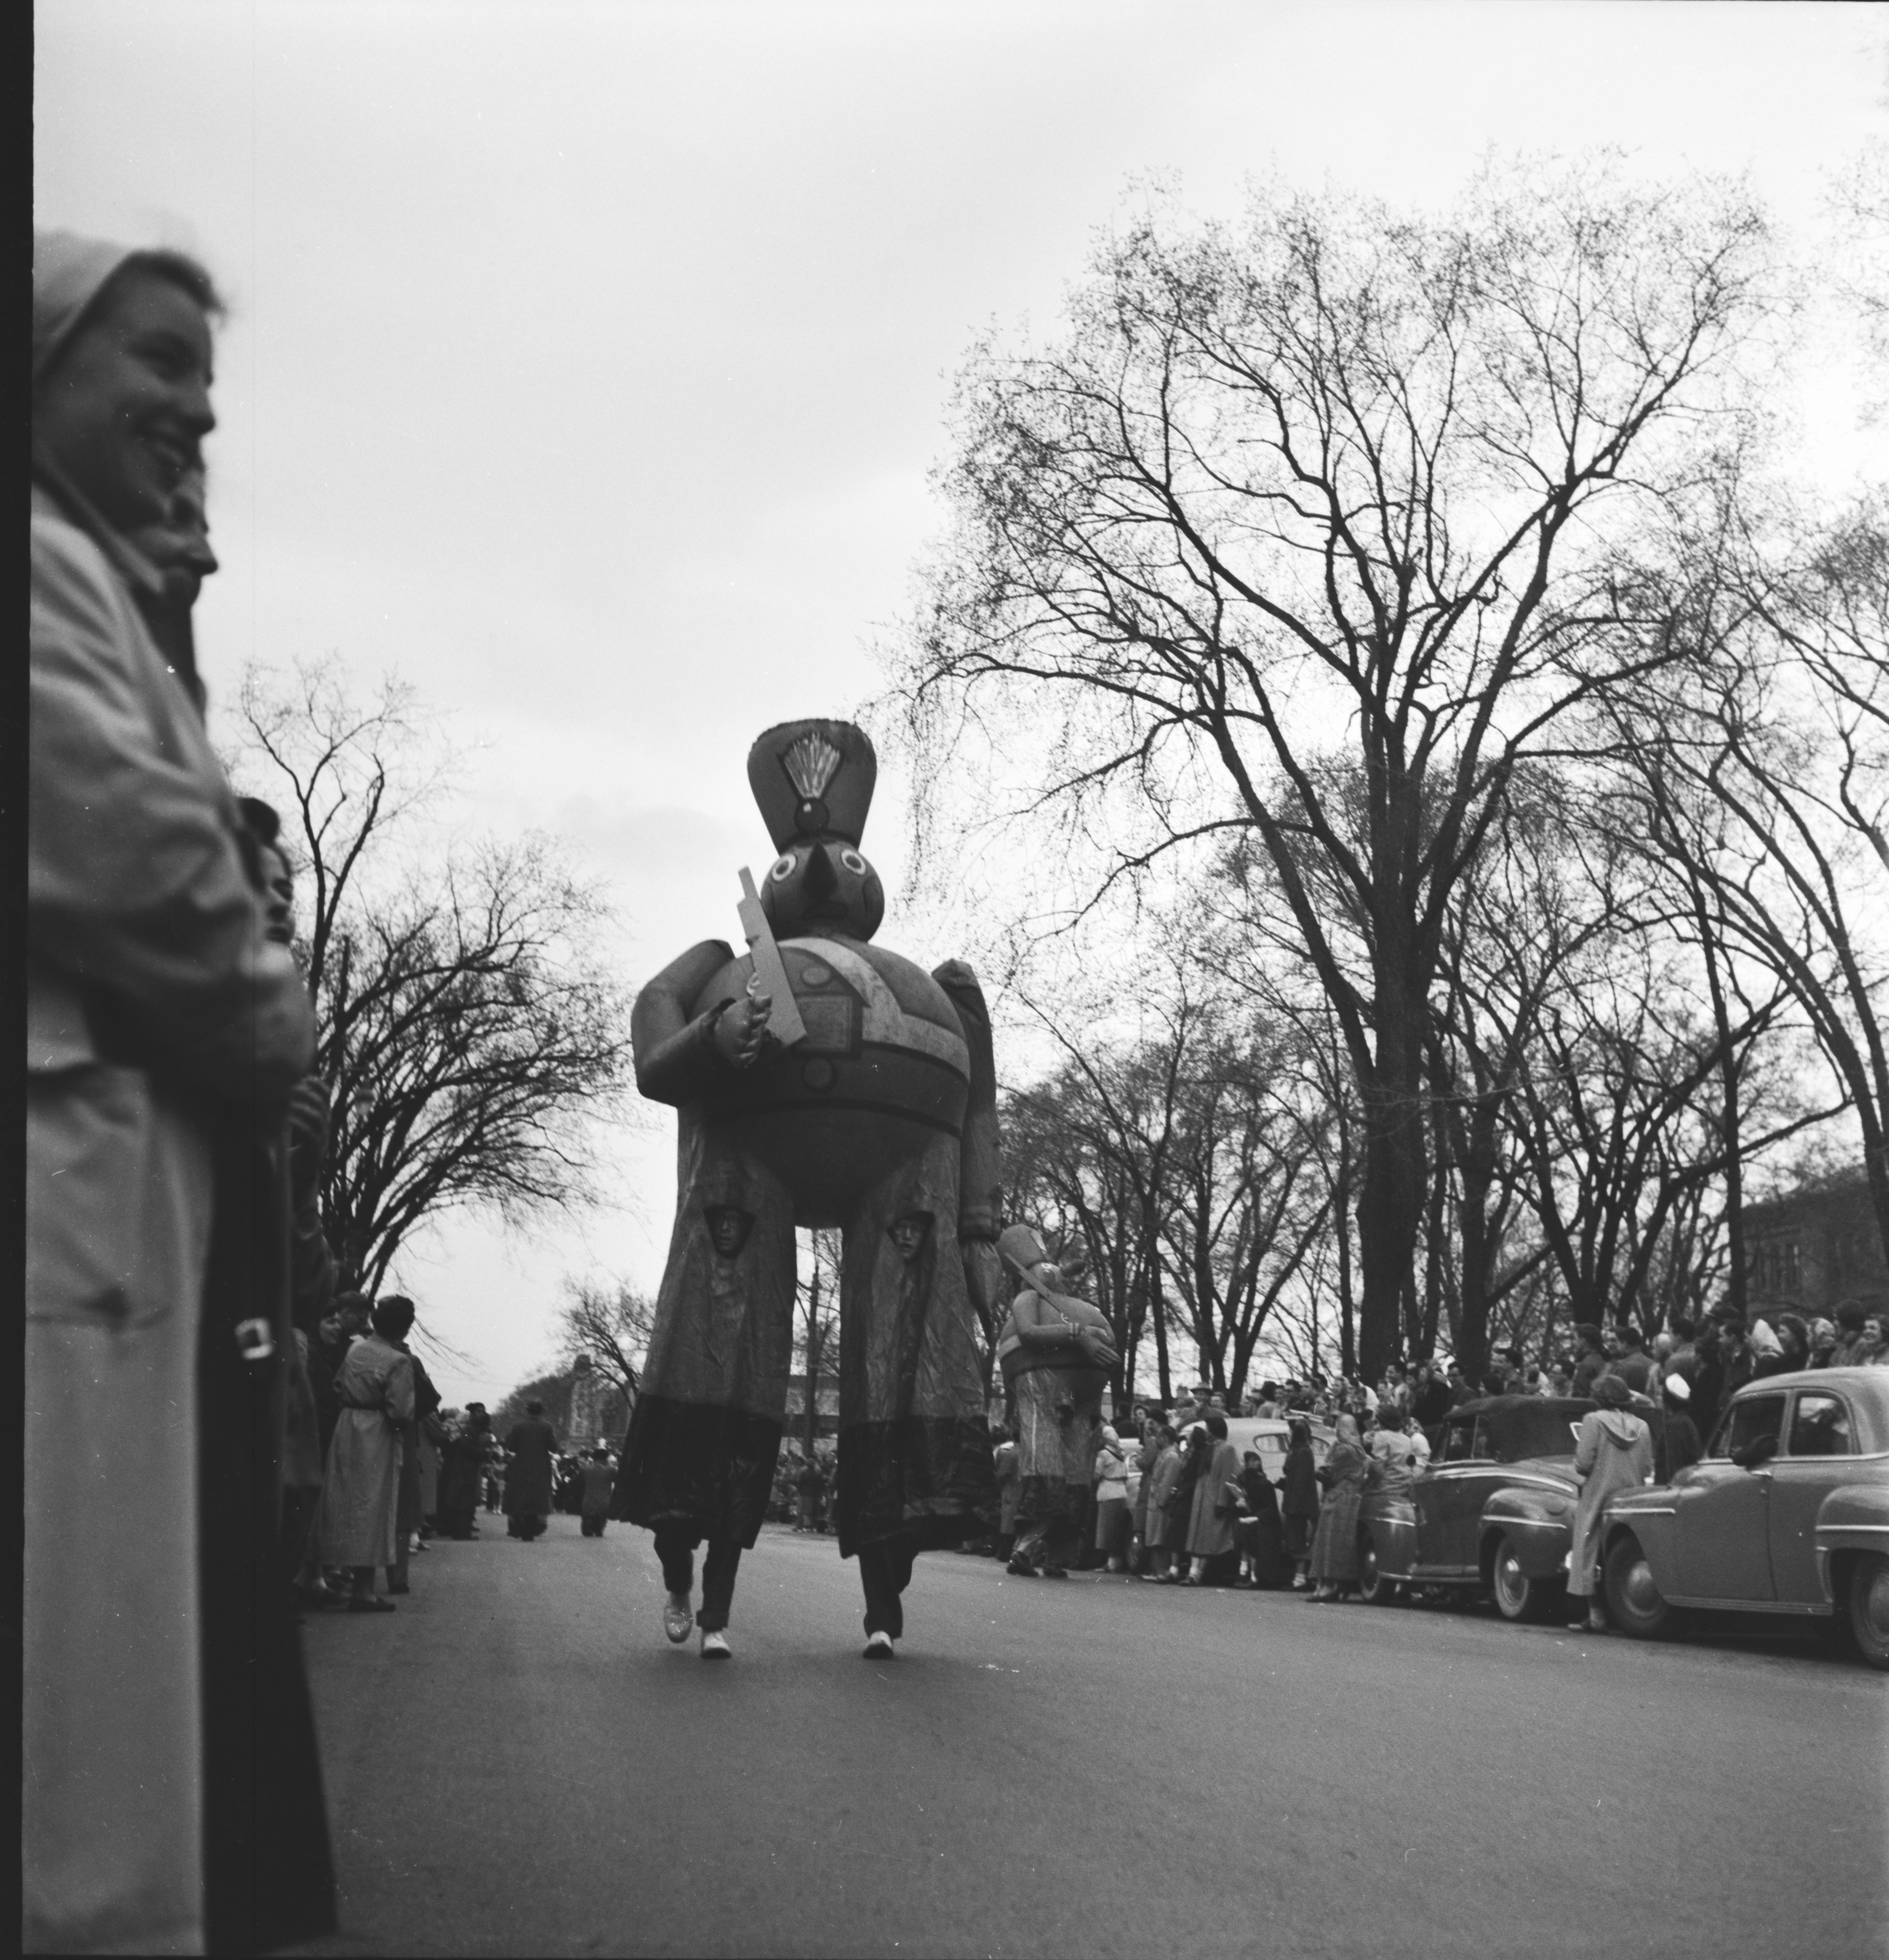 Balloon in the U-M Michigras Parade, April 1950 image